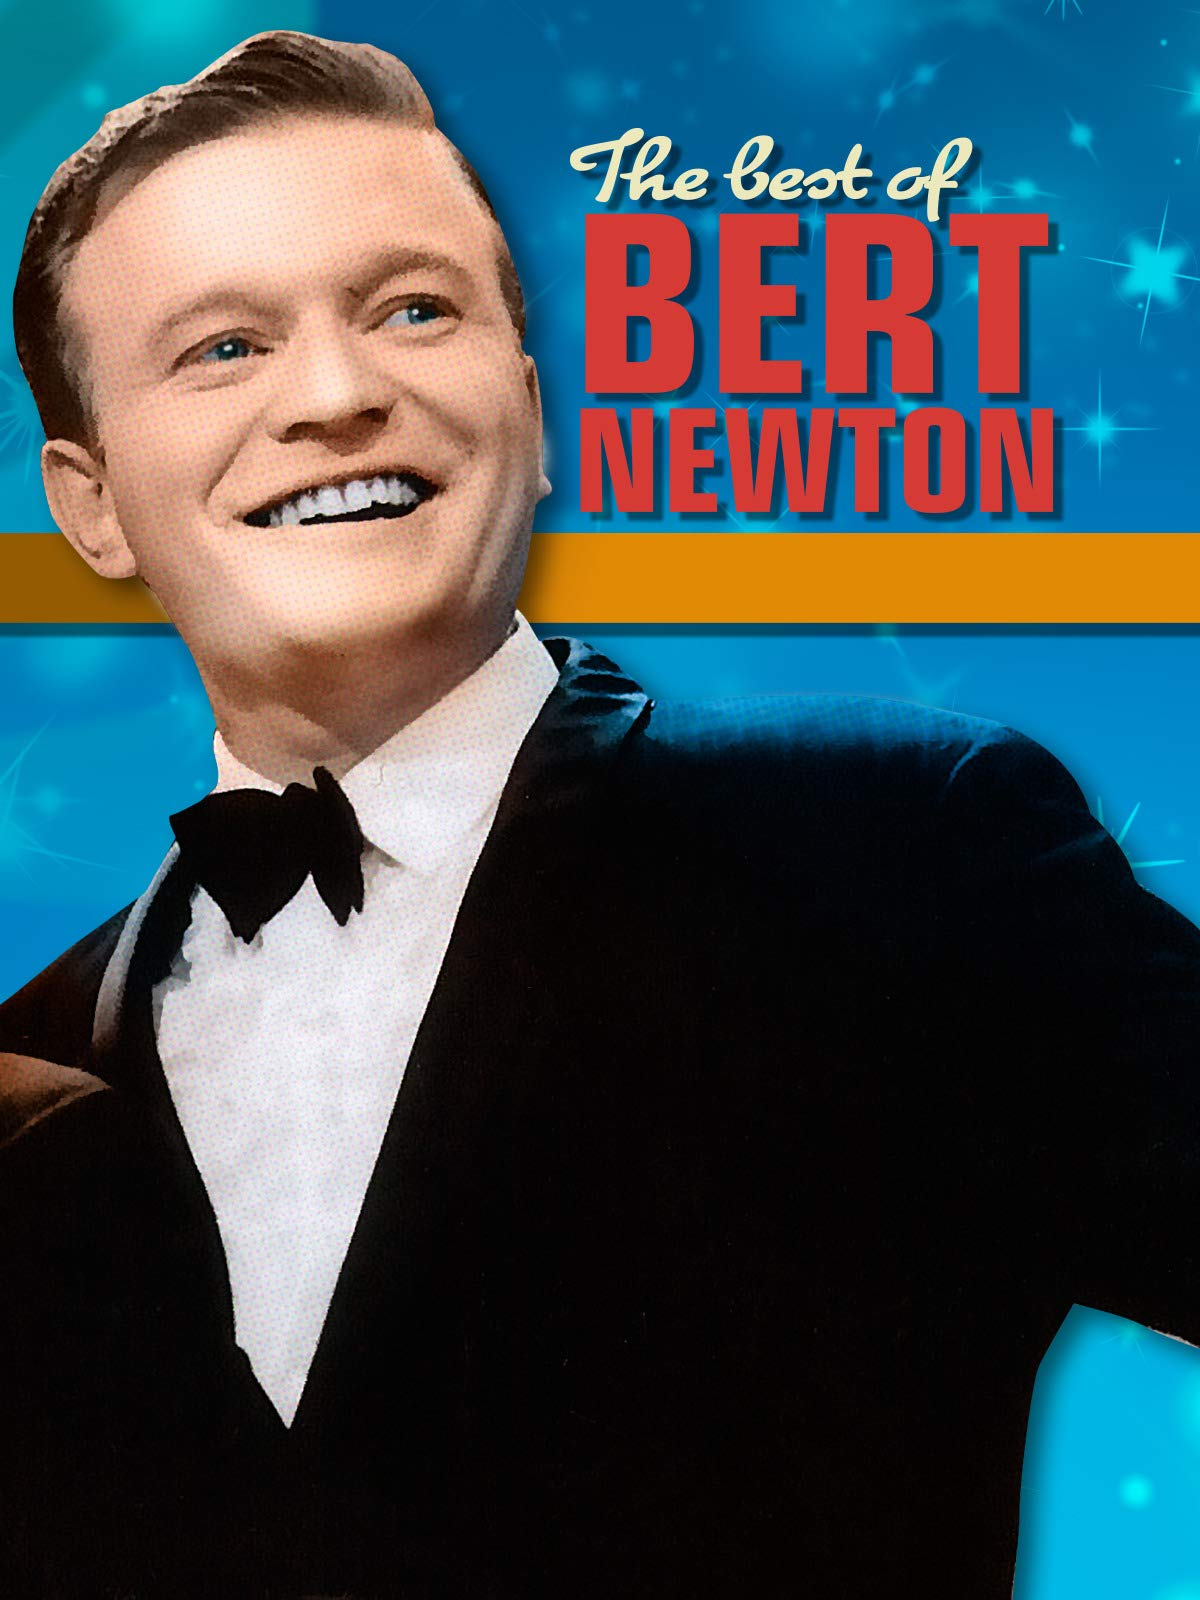 The Best of Bert Newton on Amazon Prime Video UK